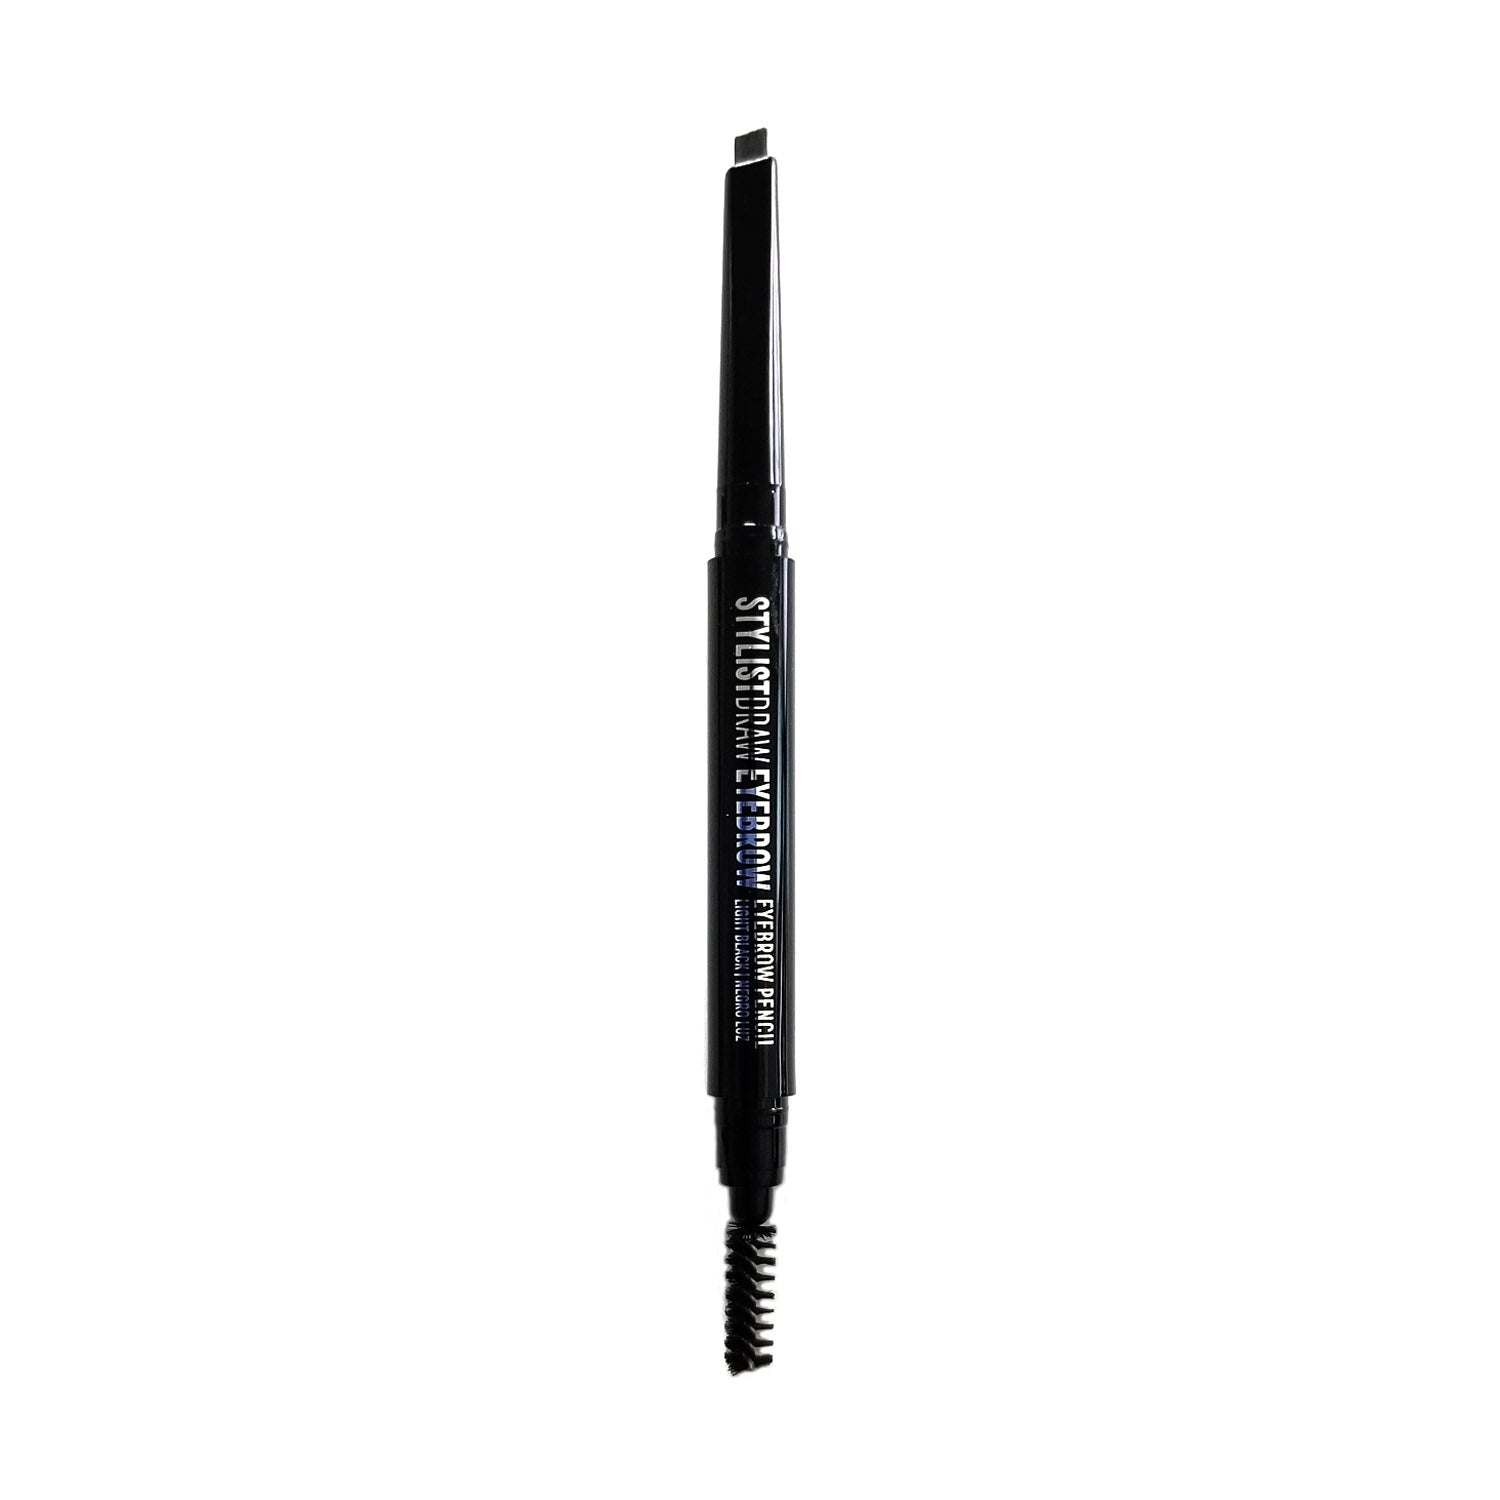 Stylist Draw Triangular-Tip Eyebrow Duo Pencil With Brush